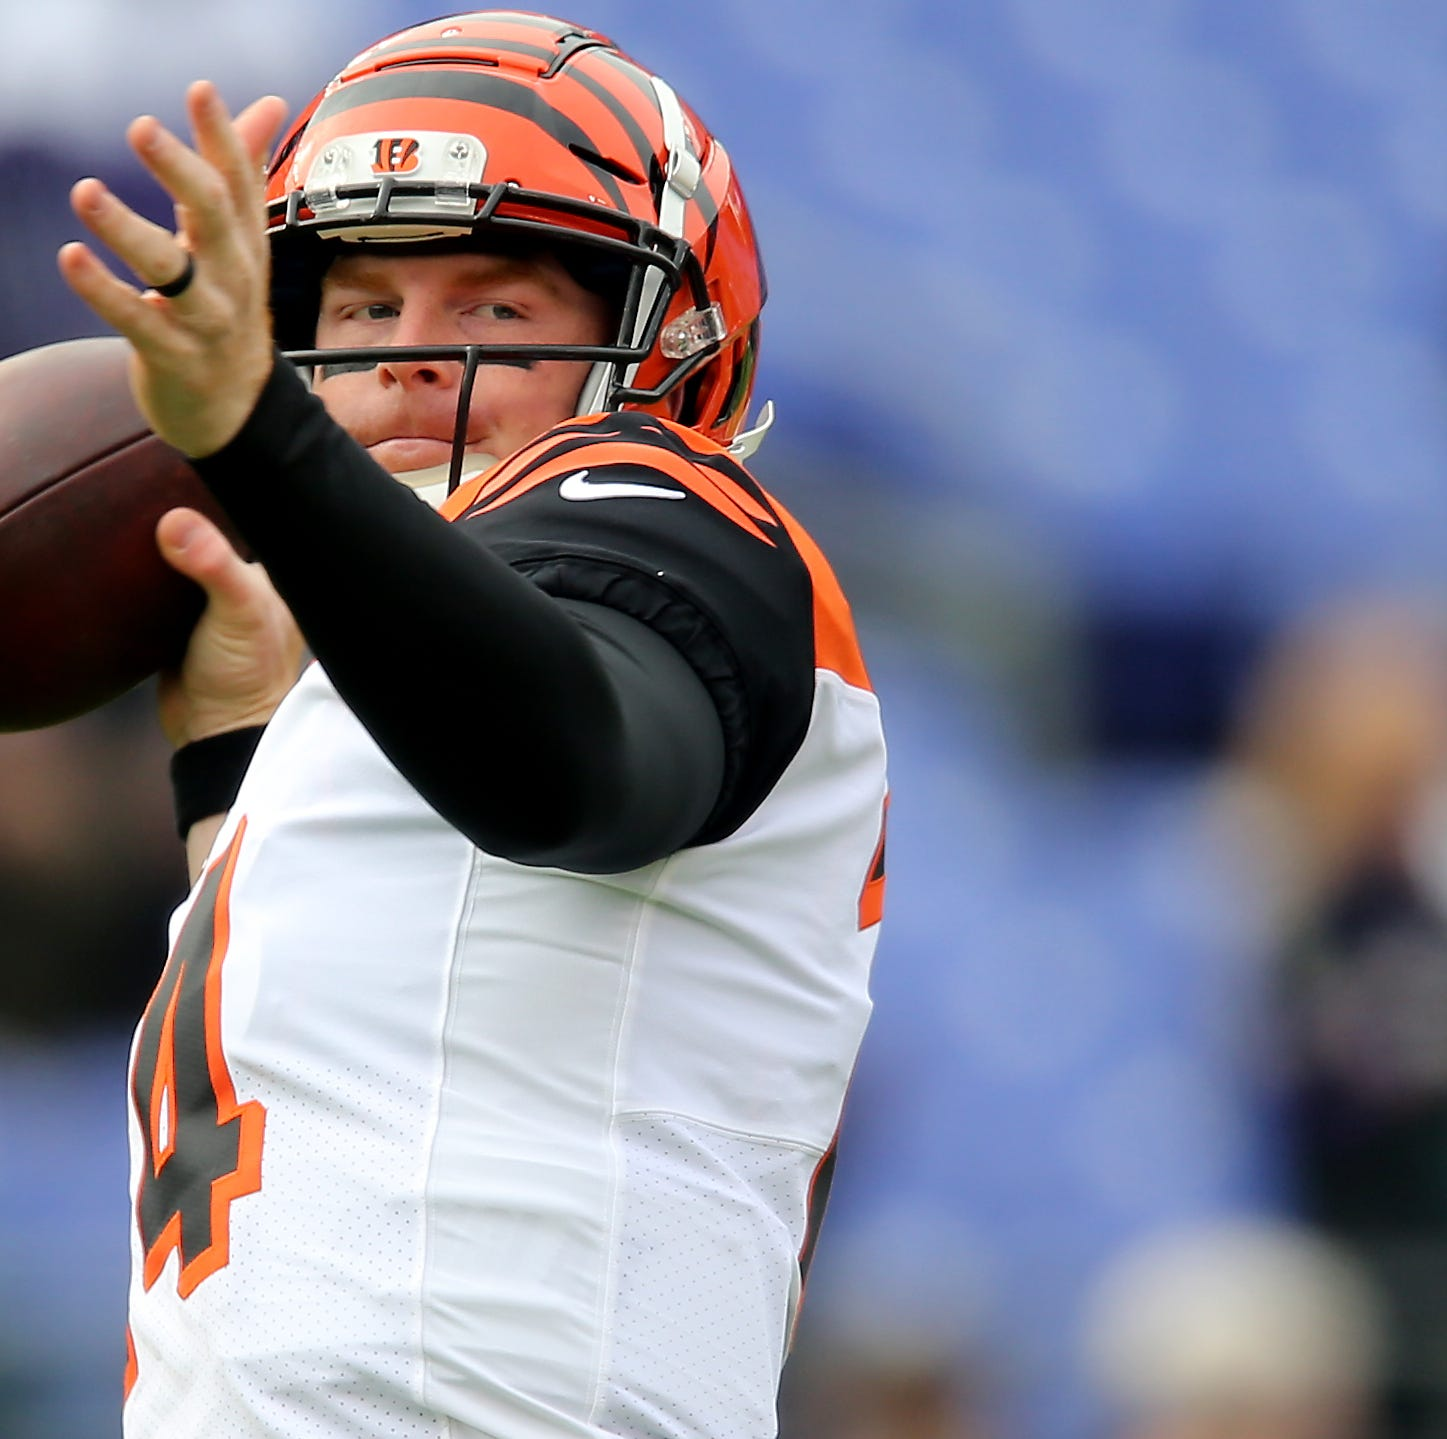 Bengals live updates: Ravens lead 24-21 in fourth quarter